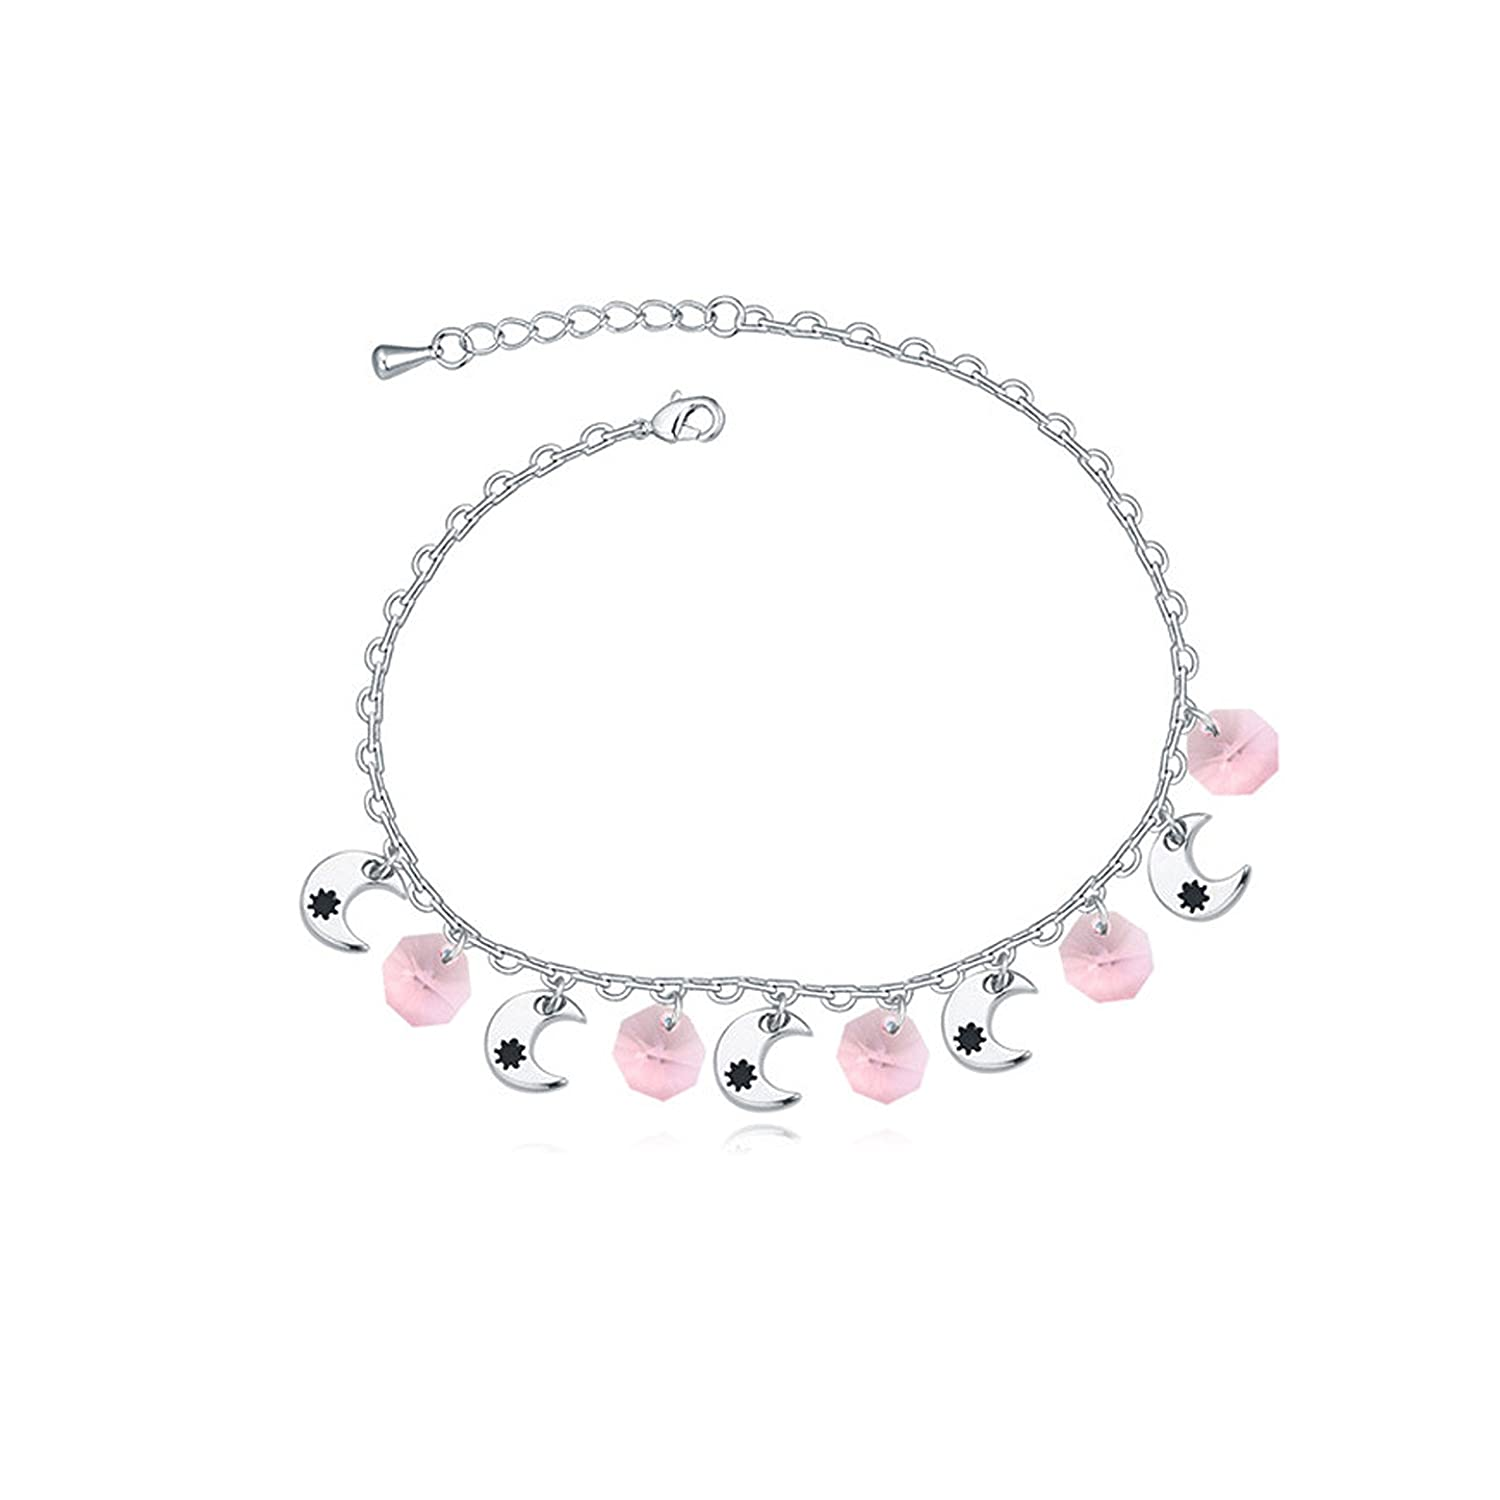 Aganippe Adjustable Crystal Charm Beach Anklet Bracelet for girls